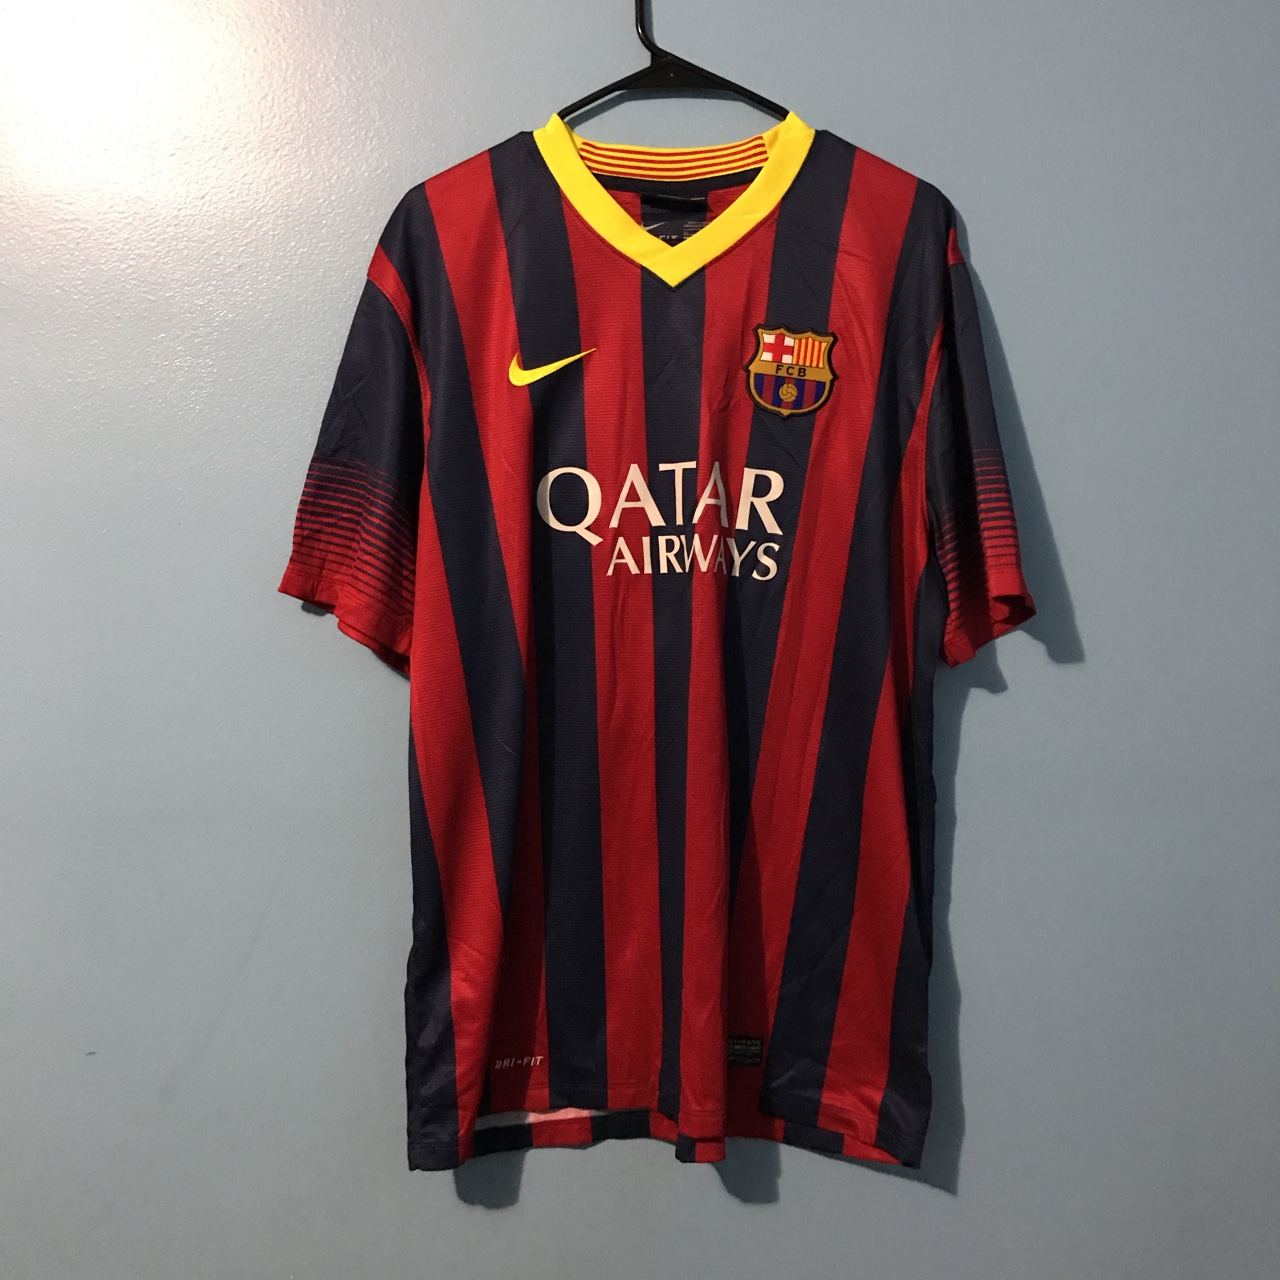 finest selection d891c 962aa Authentic Messi fc Barcelona jersey from 2014 size x... - Depop